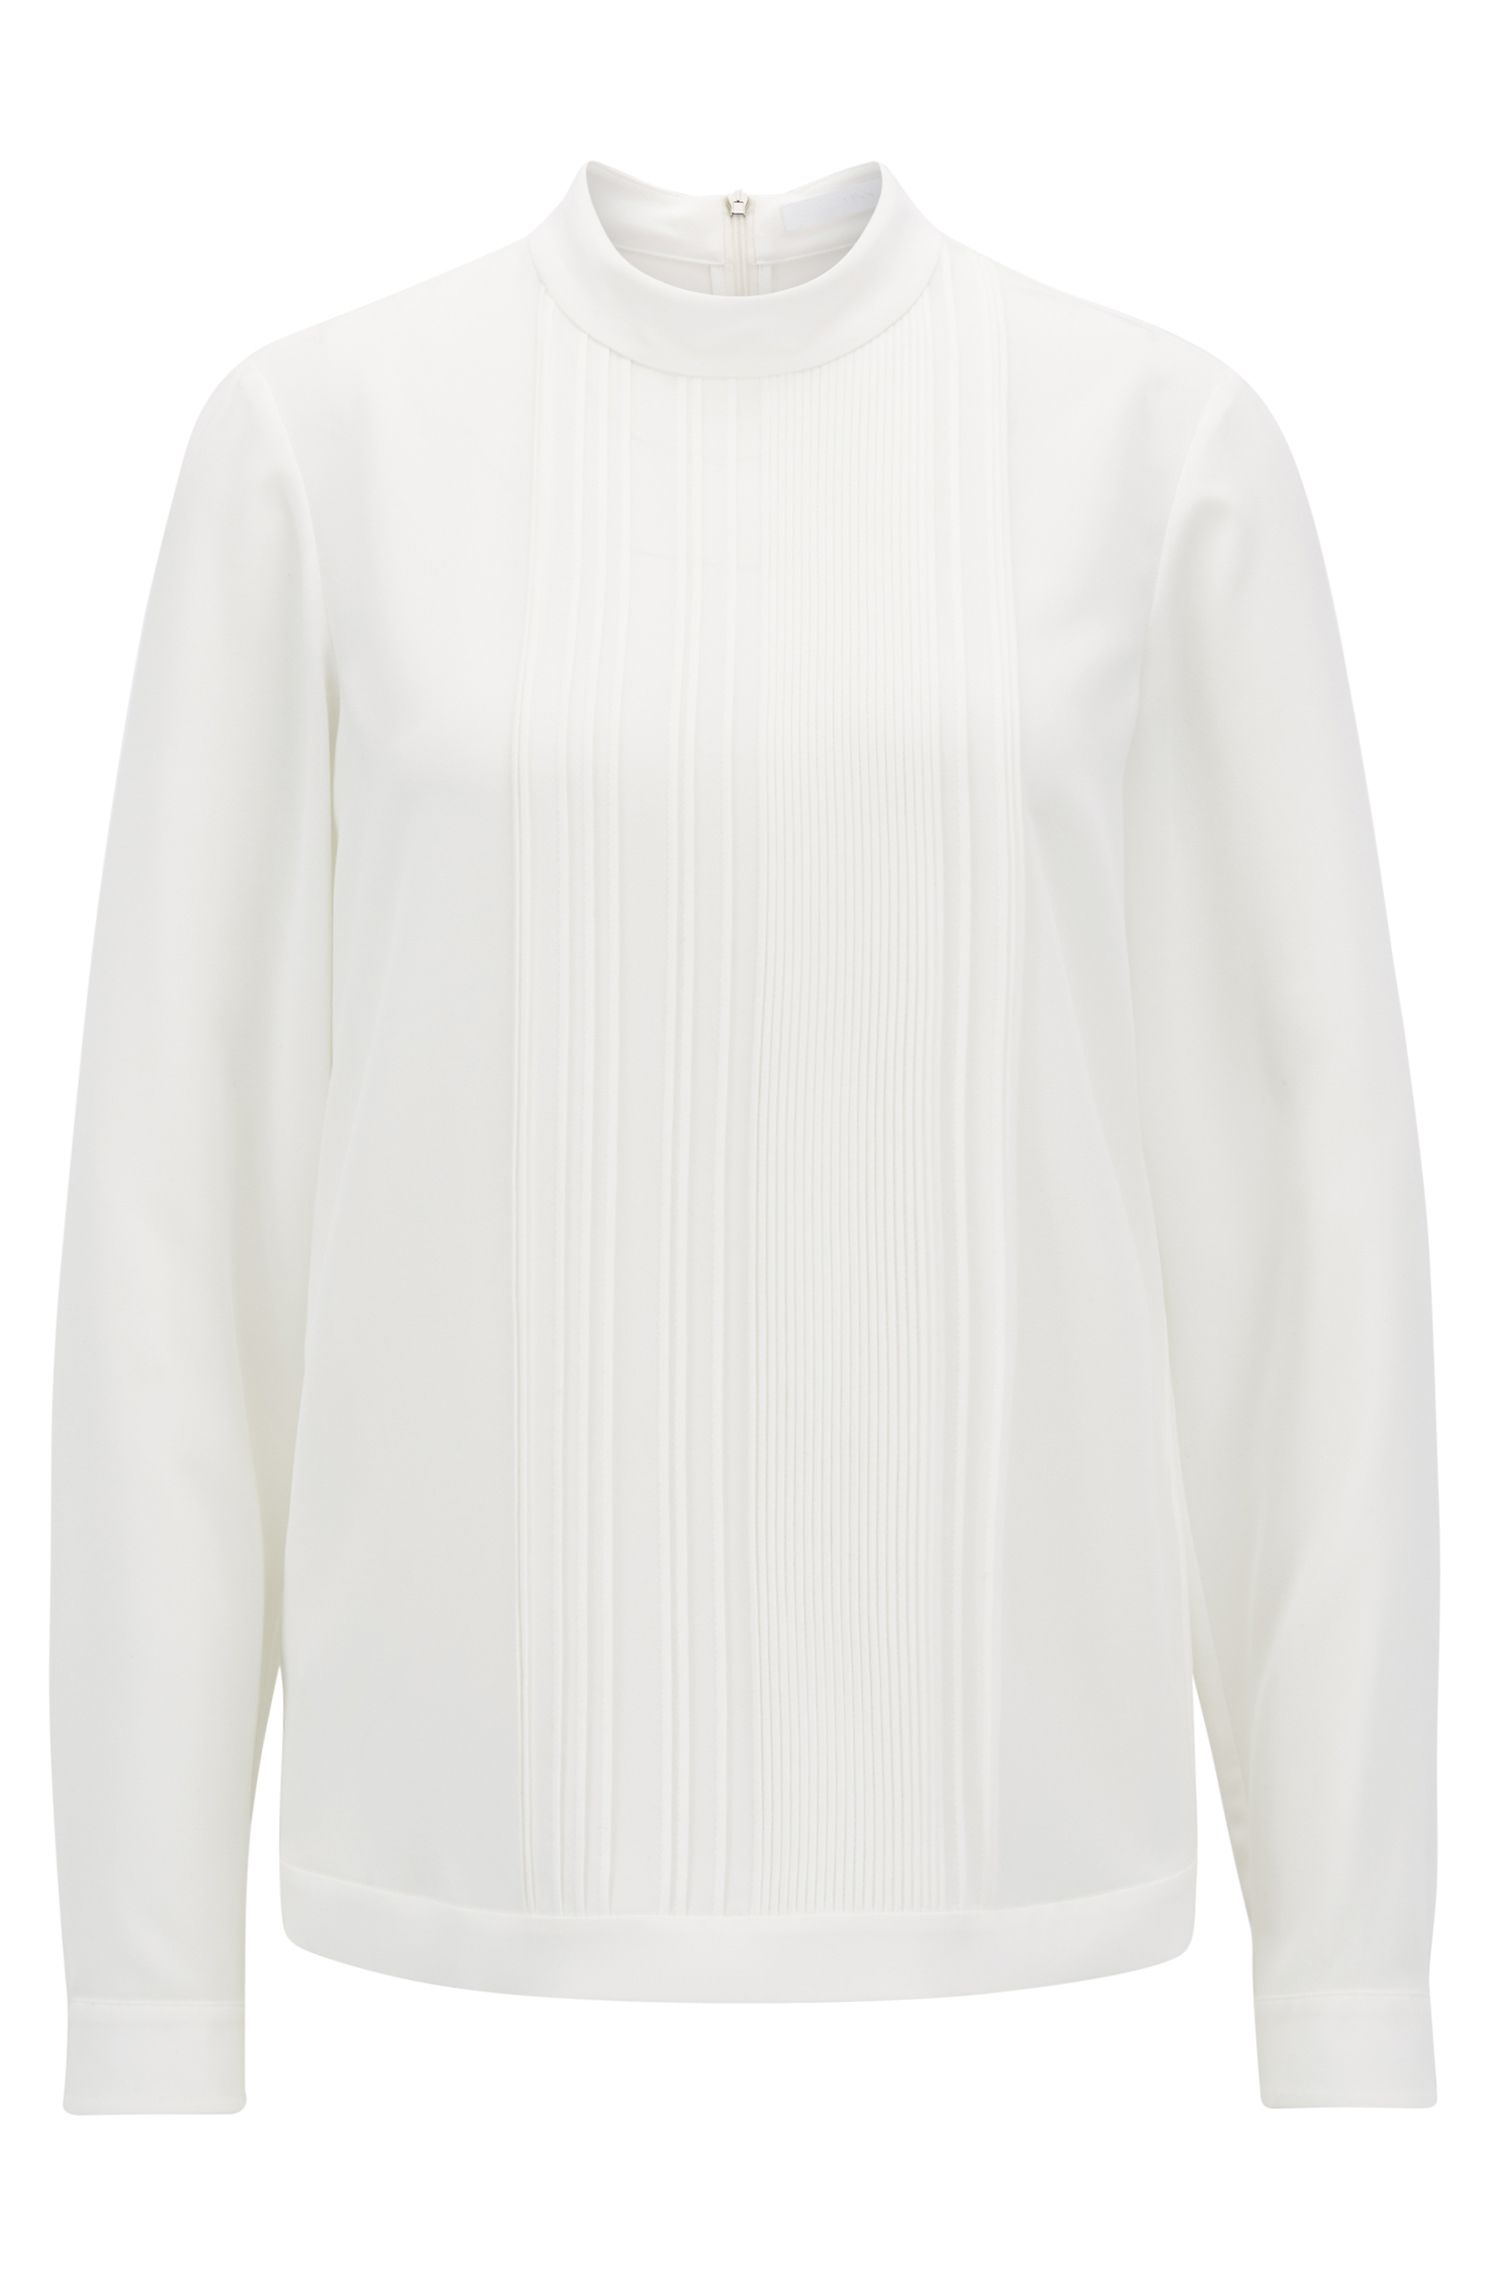 Lightweight top in stretch crepe with pleated front panel